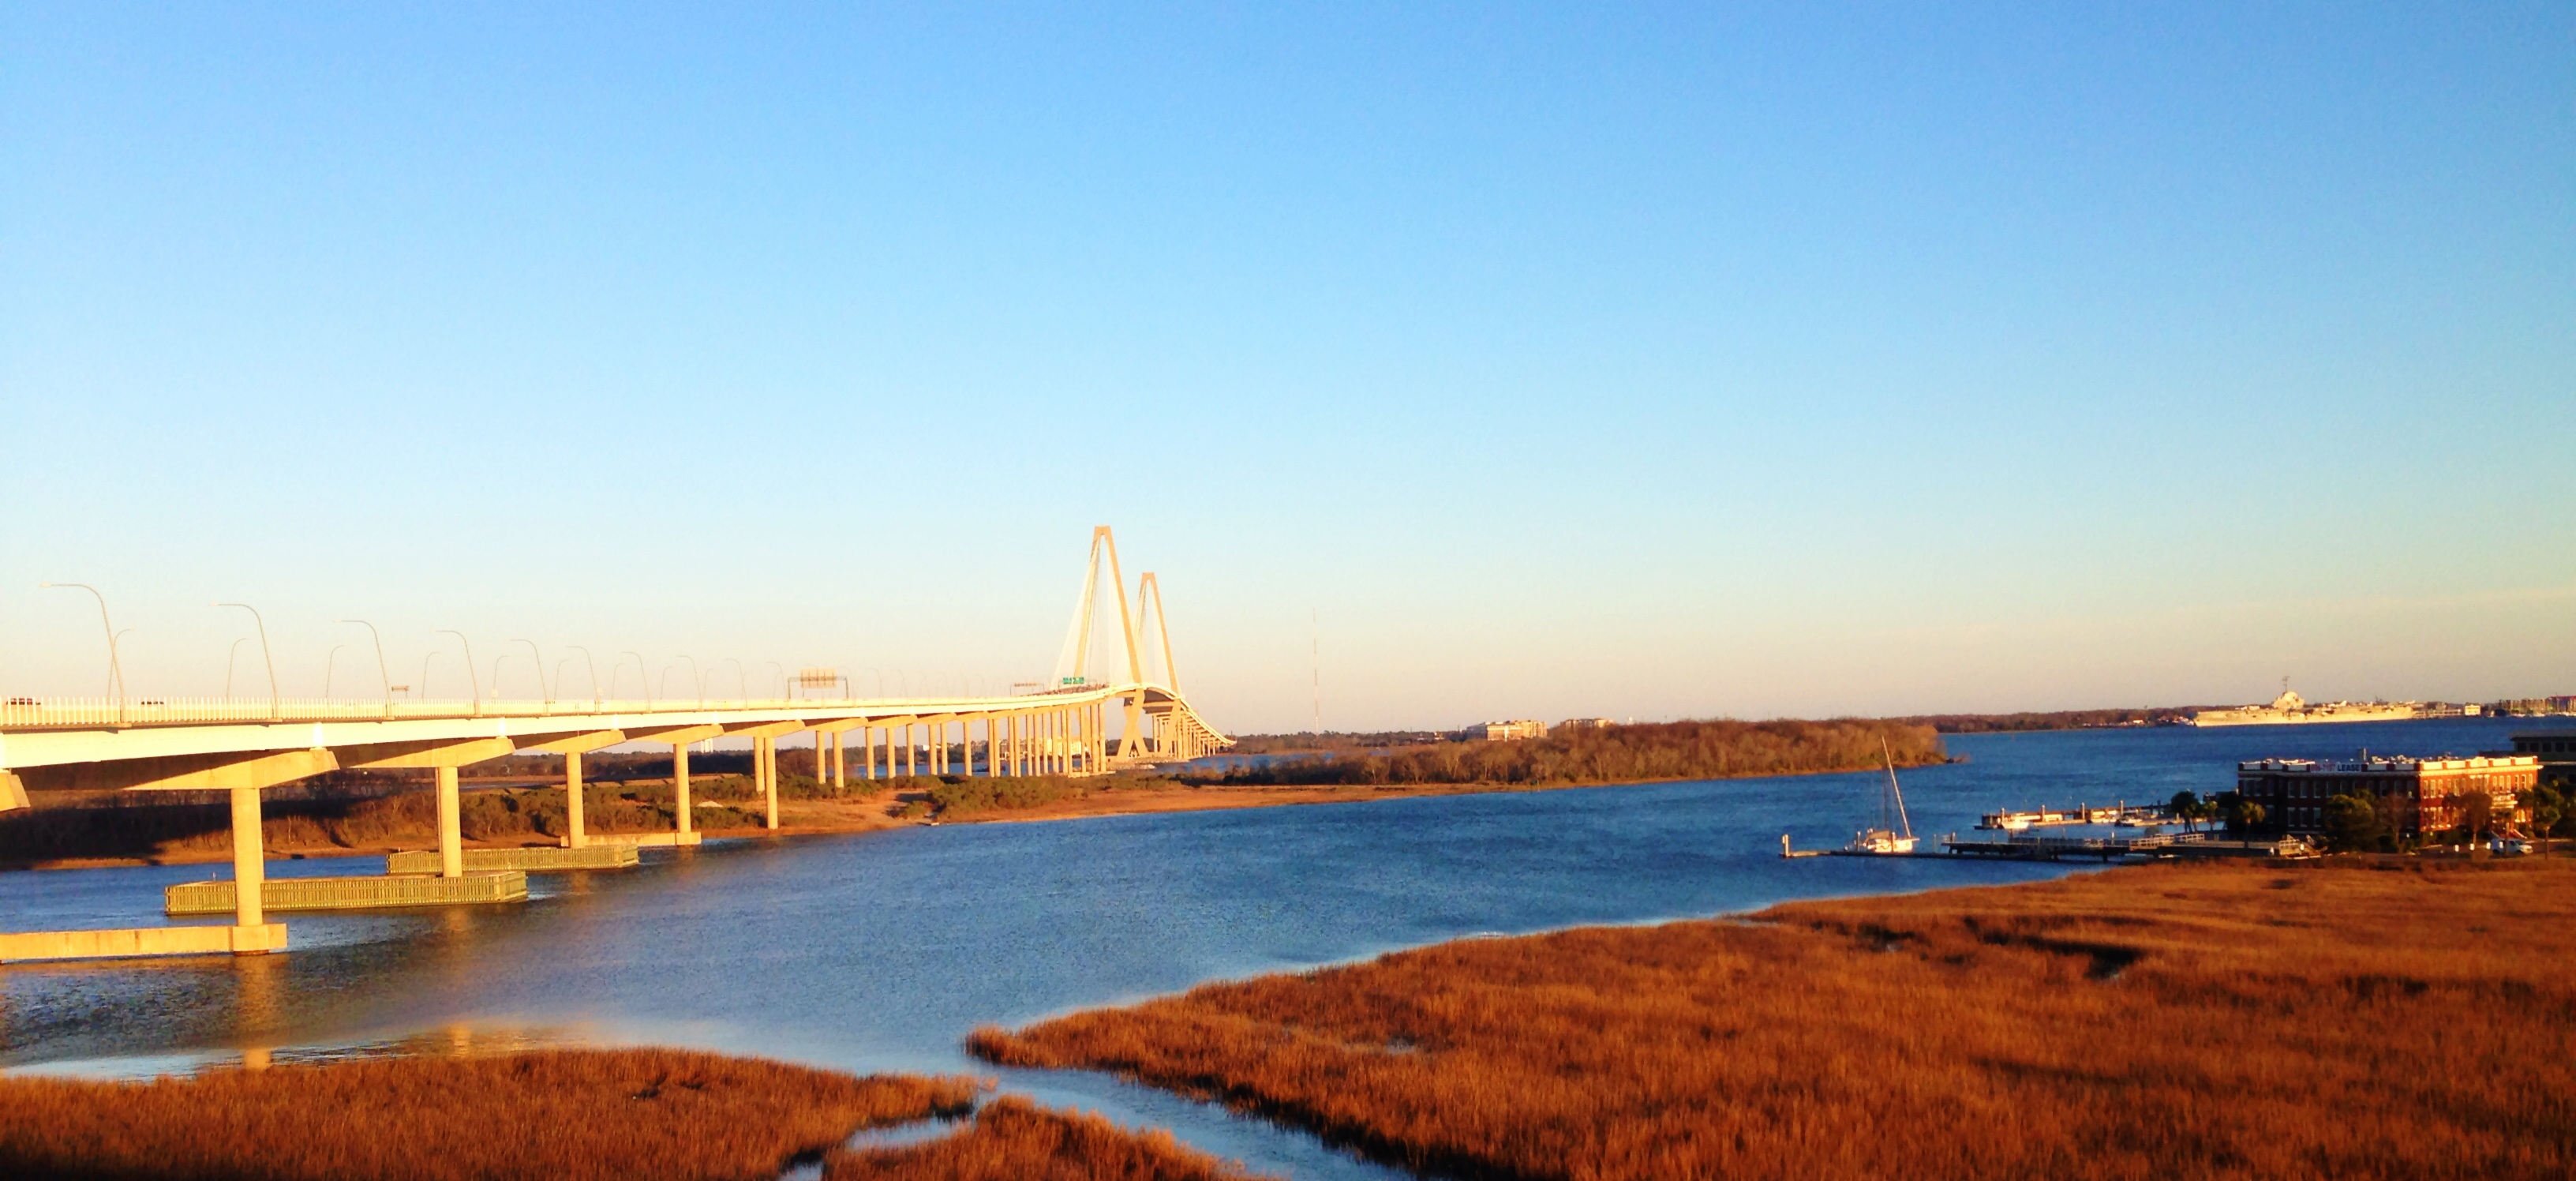 ravenel bridge Outdoor activities things to do Charleston